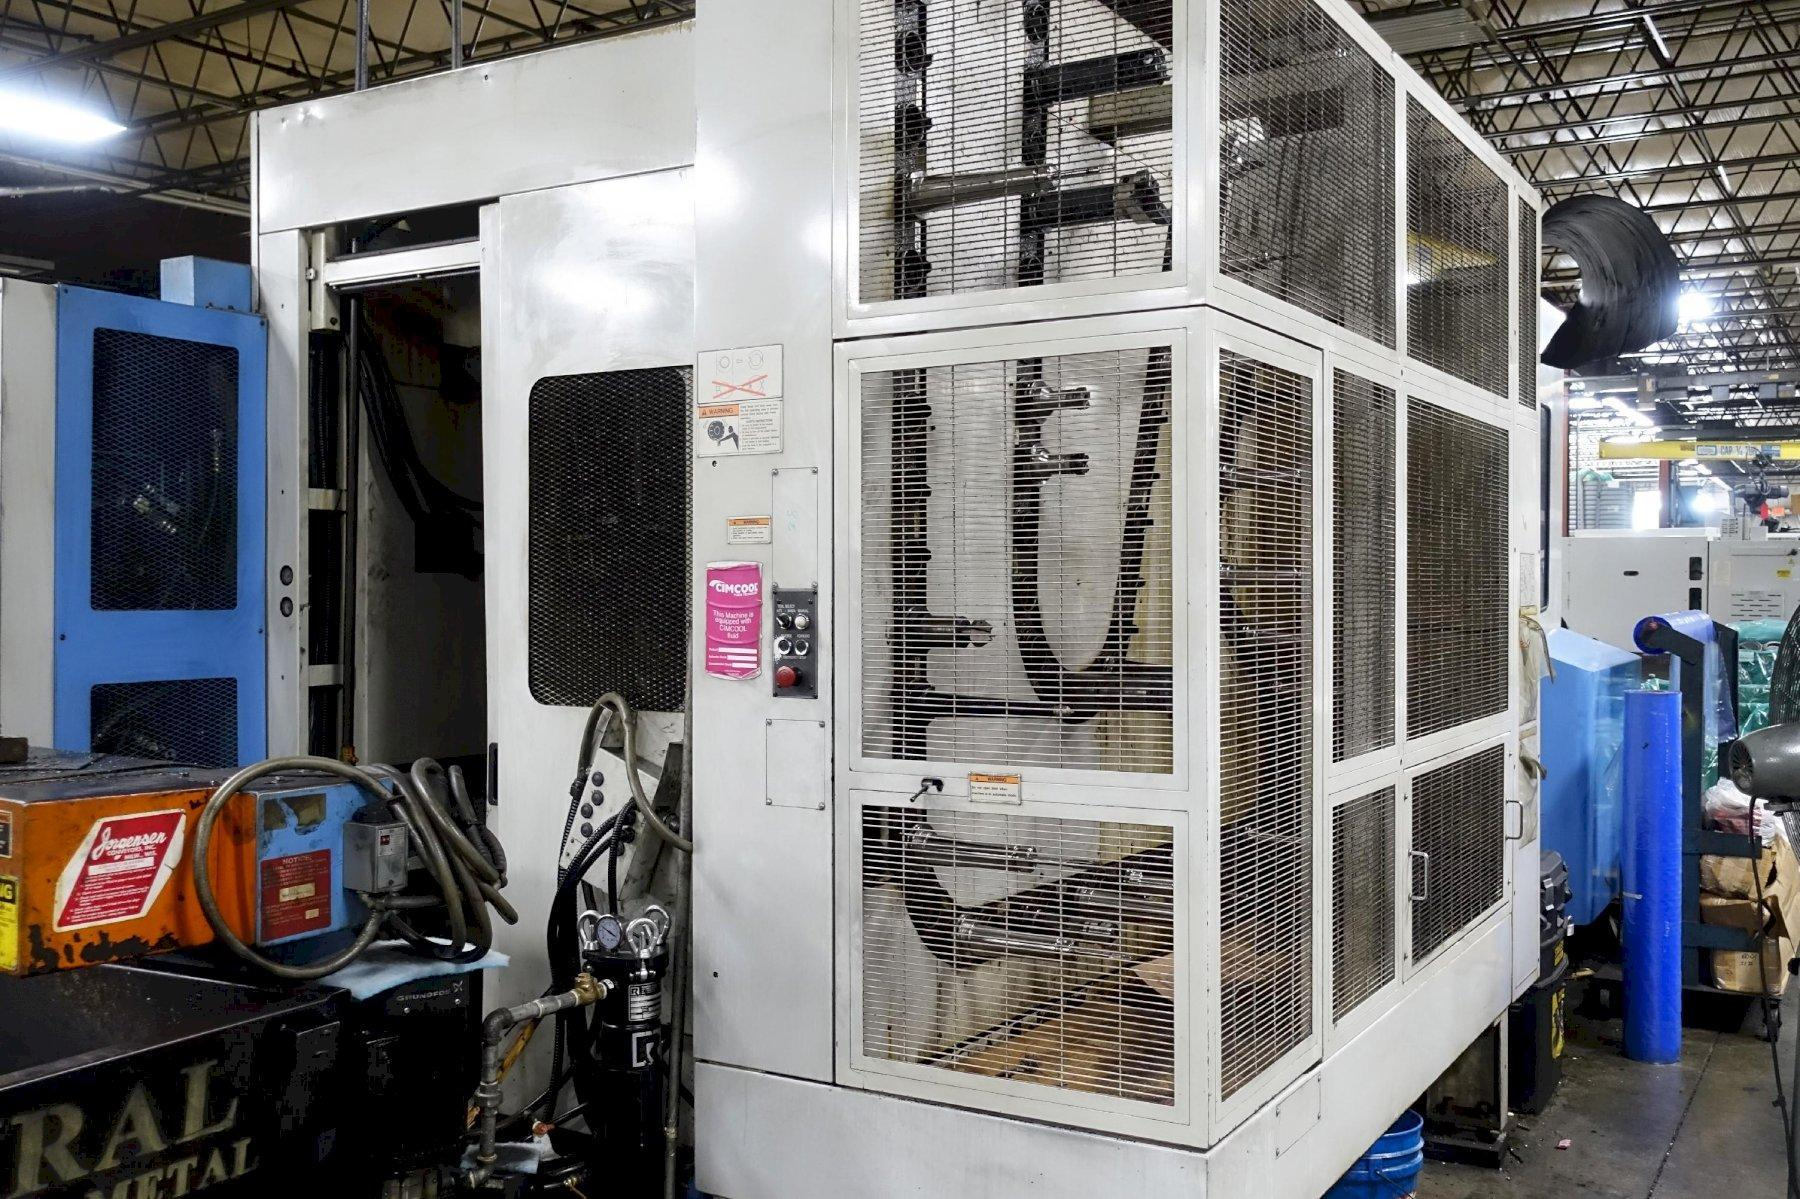 MAZAKMazak FH680 CNC Horizontal Machining Centers - (3) Available!